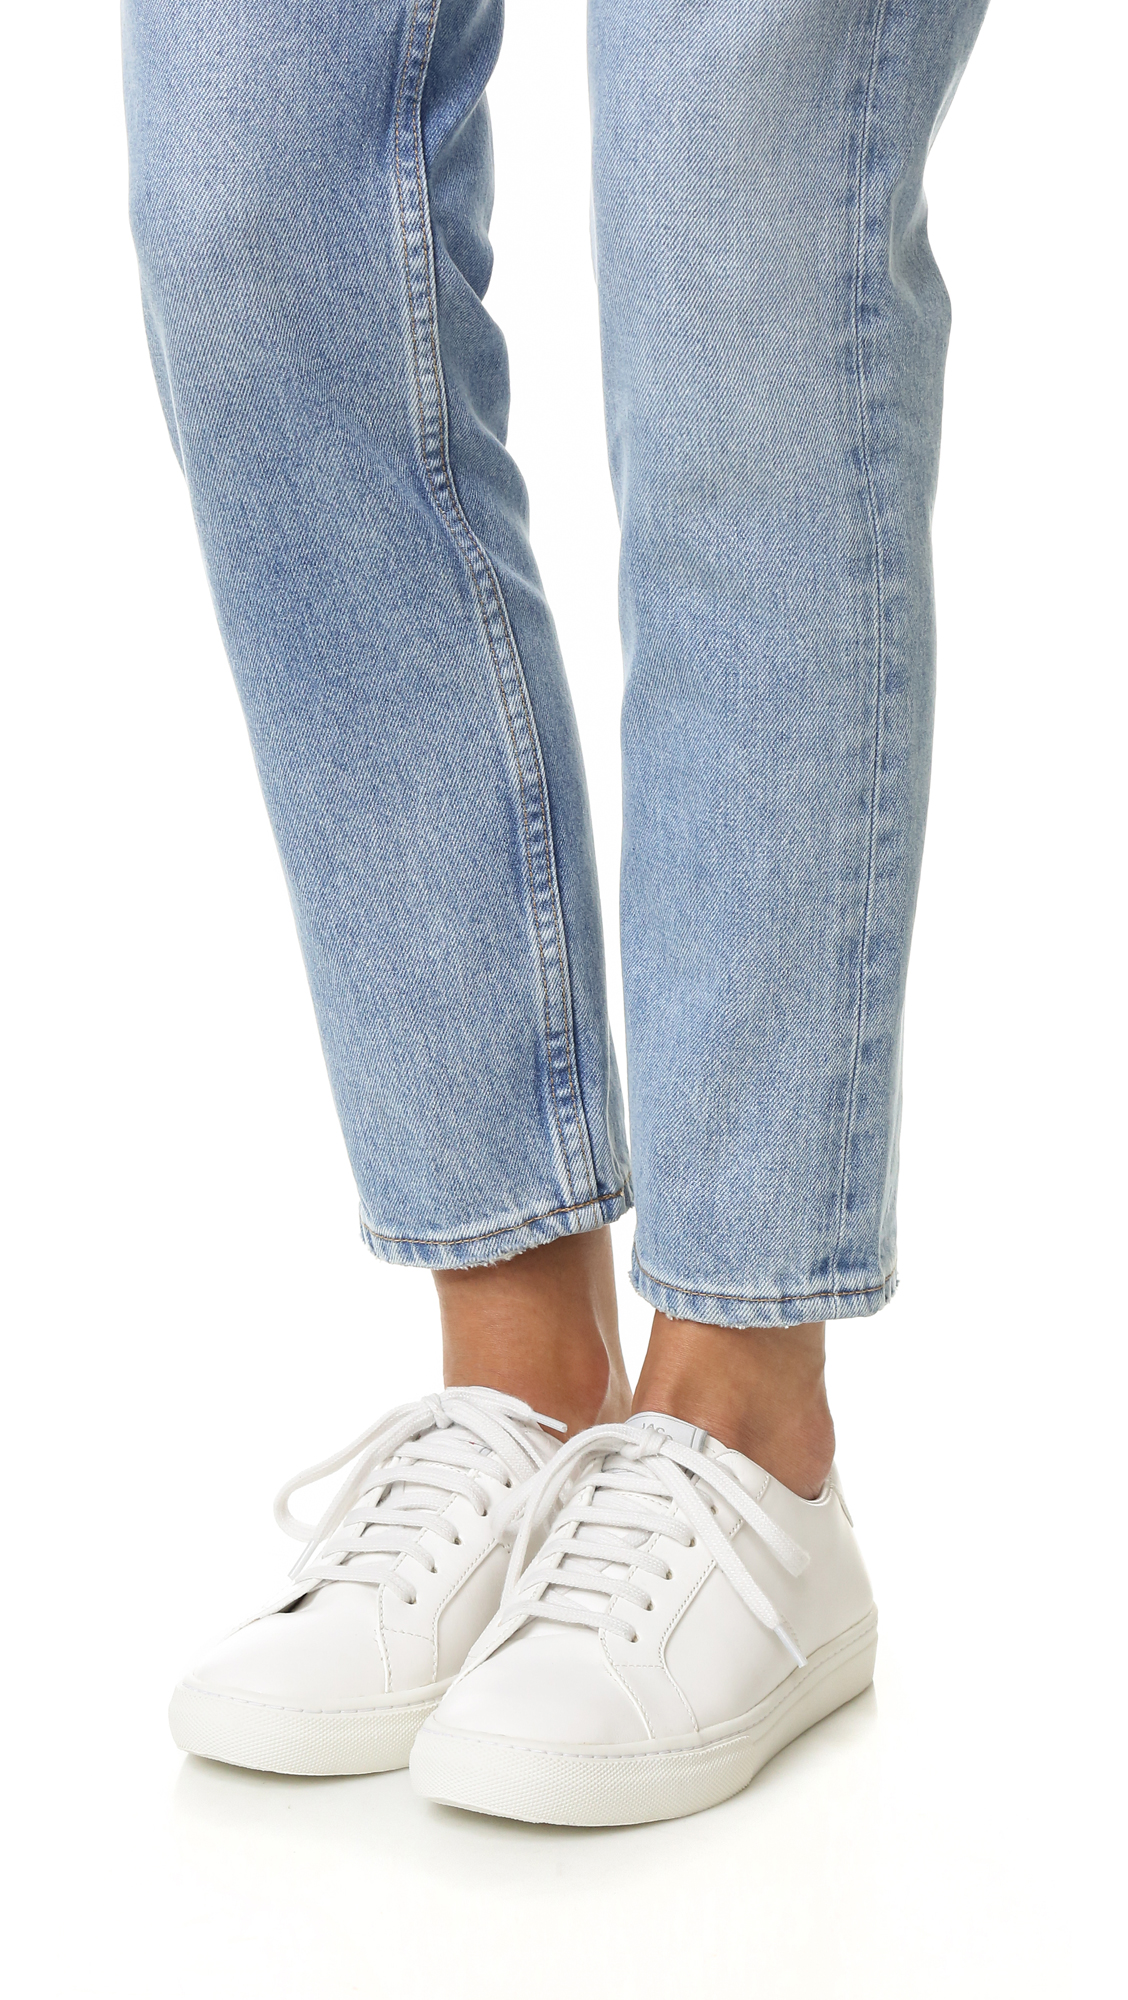 Marc Jacobs Empire low top sneakers T5HUOgQiKq